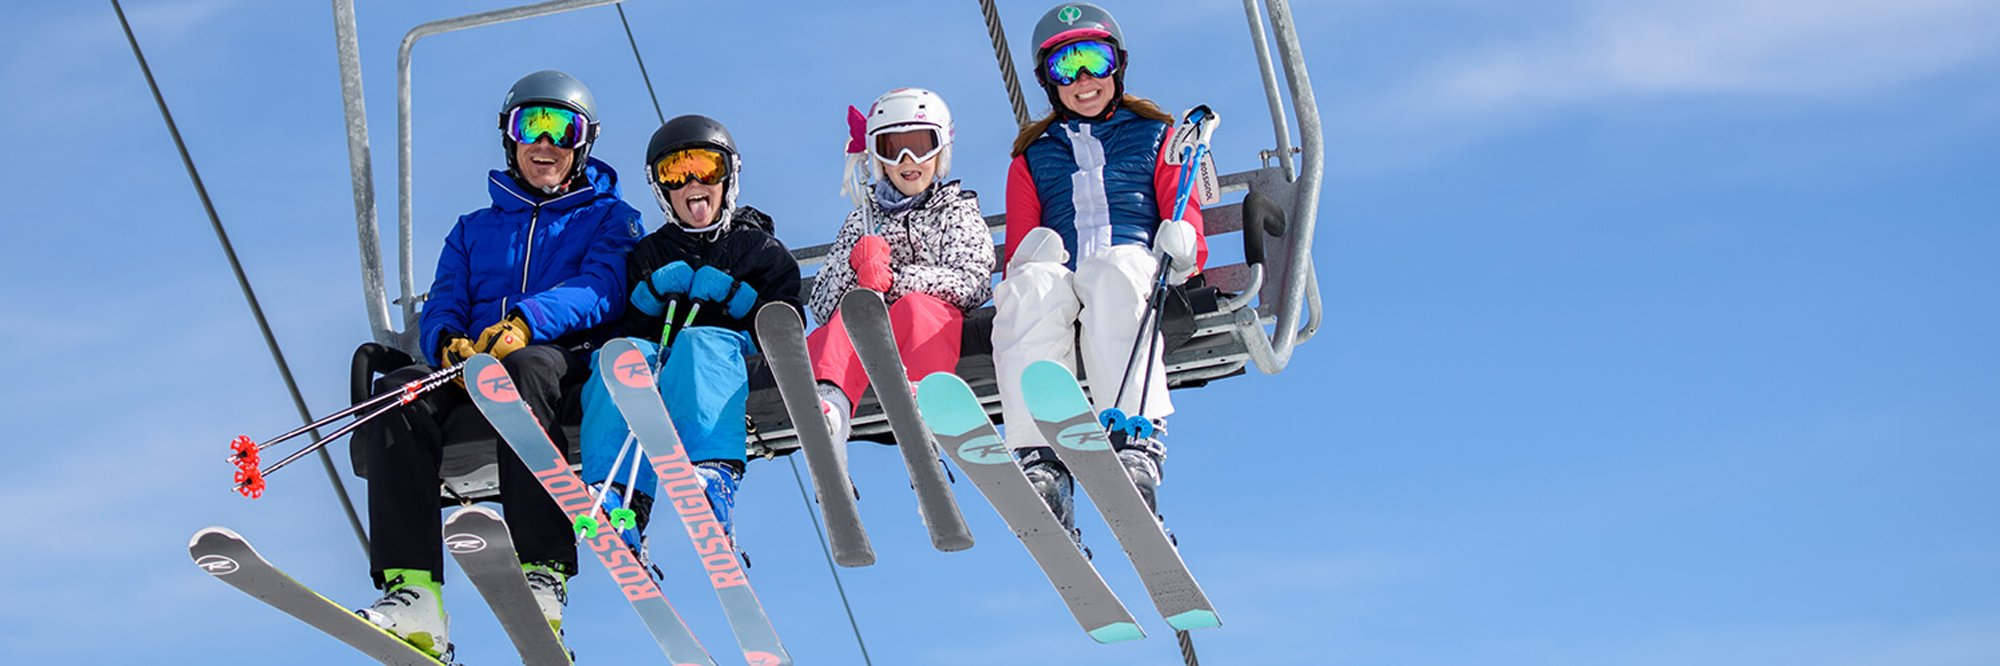 Alpina, Atomic, Blizzard, Nordica, and Salomon kids skis for sale in West Seattle, WA